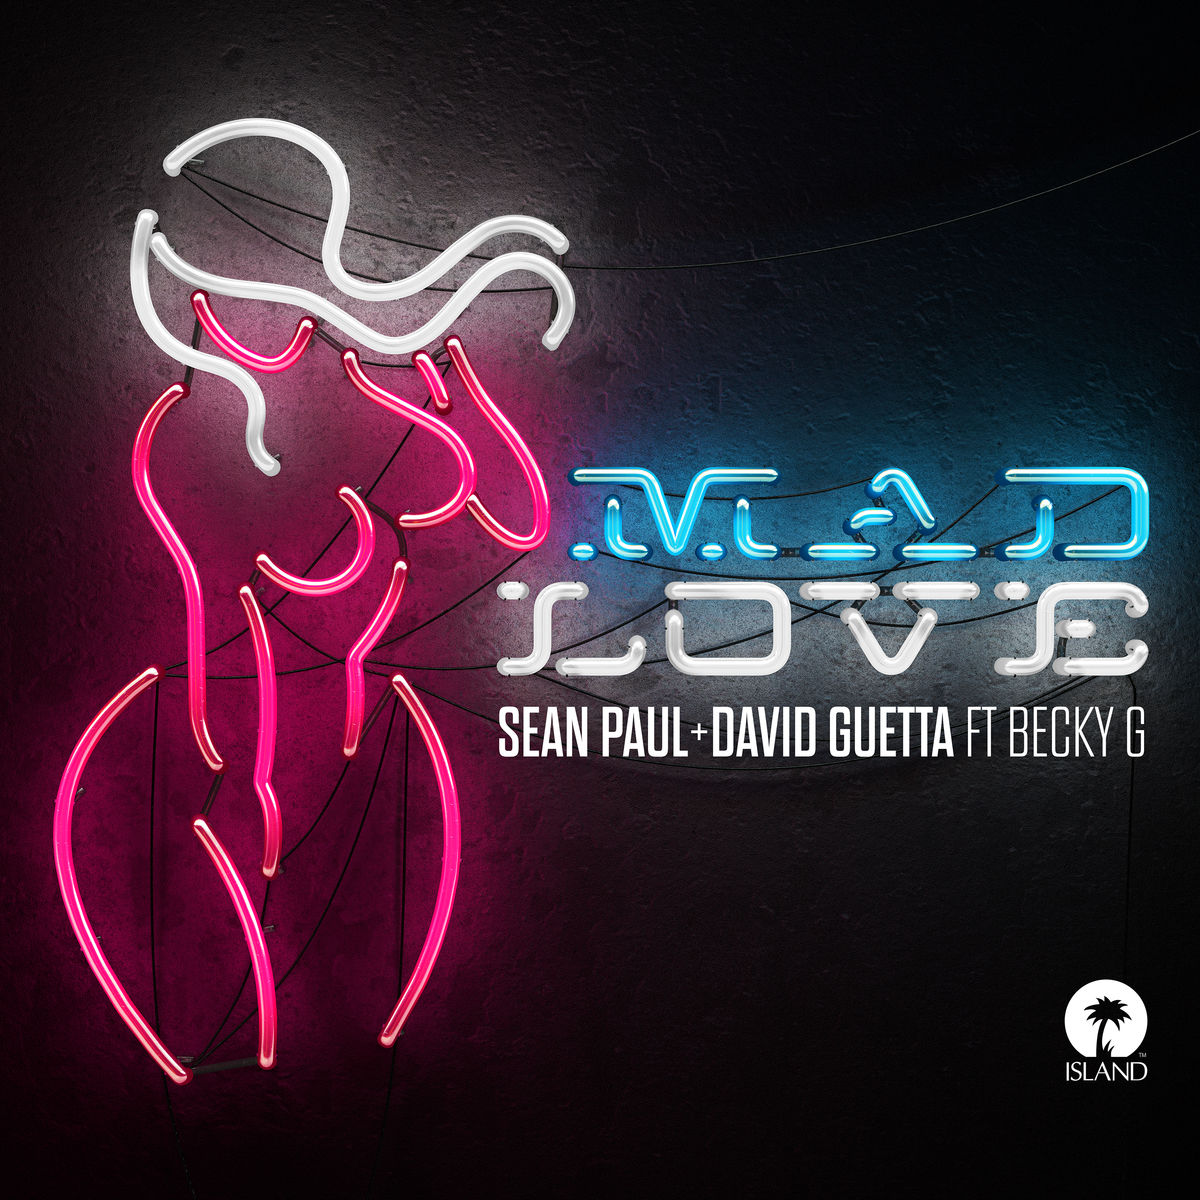 ef642304d11e ultratop.be - Sean Paul + David Guetta feat. Becky G - Mad Love